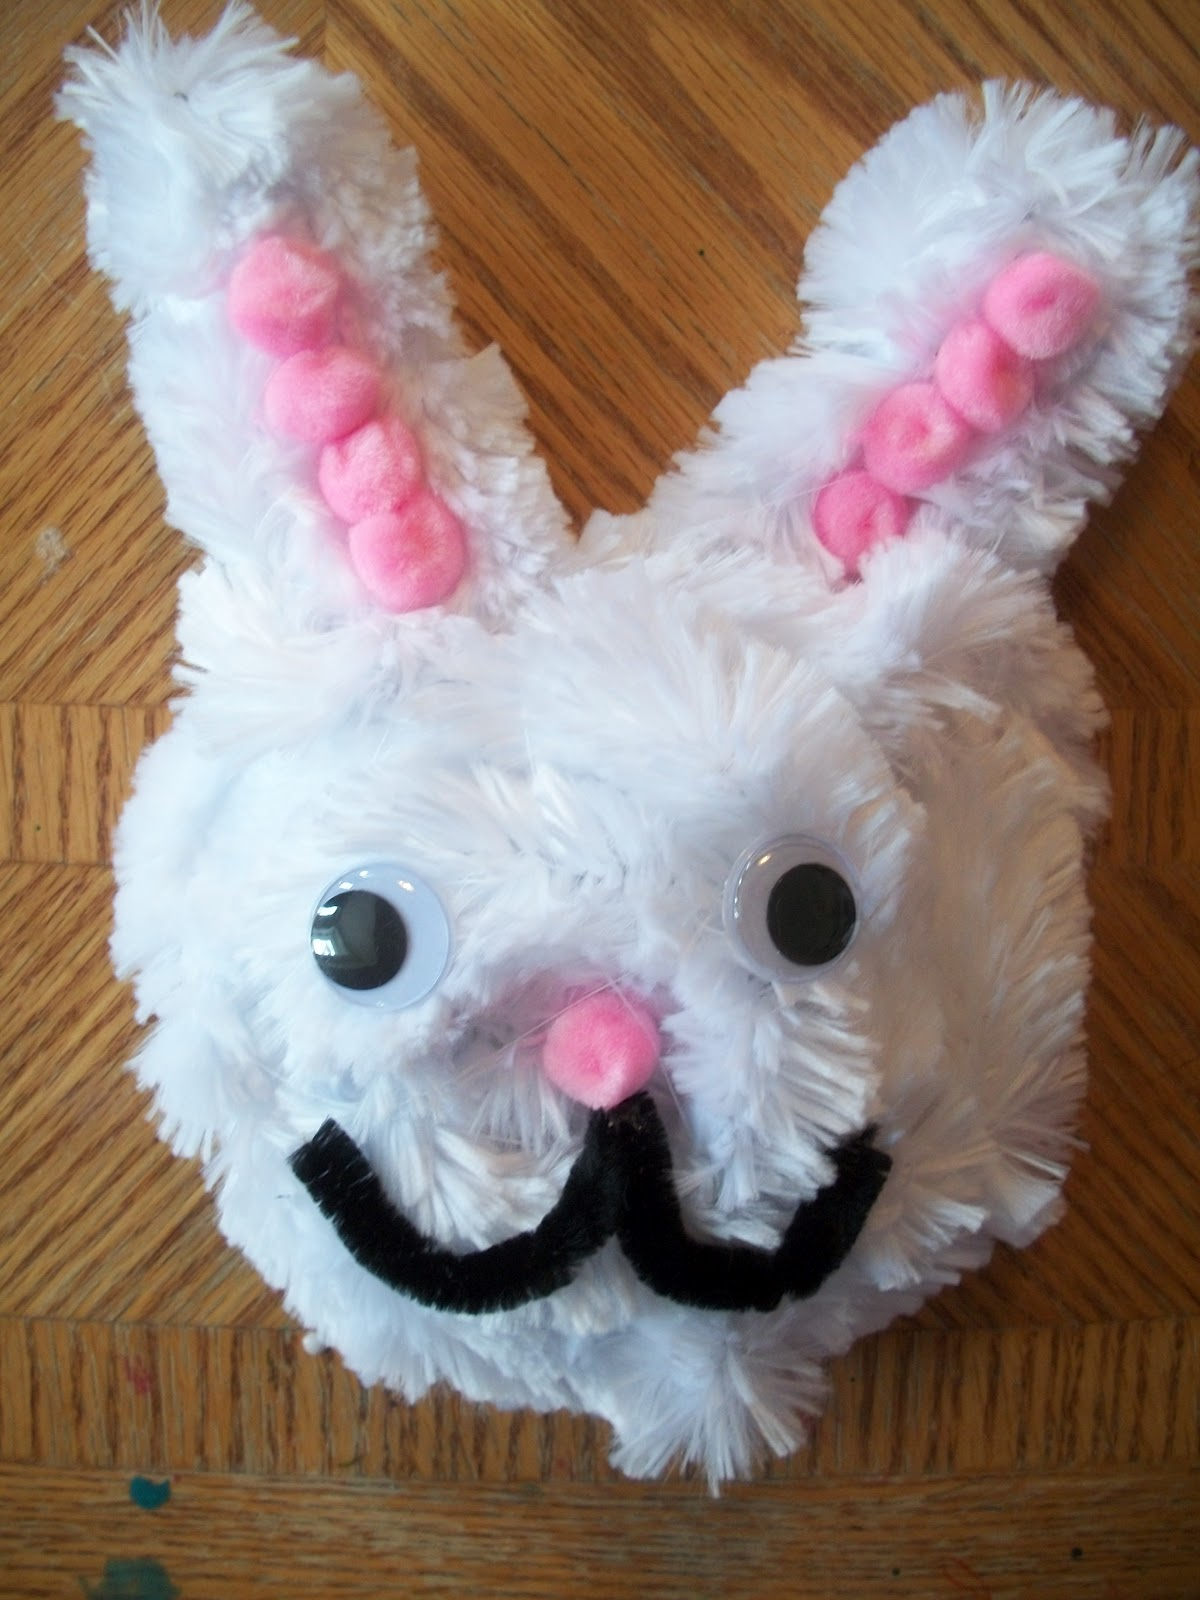 Pams party practical tips crafting with kara bunny craft for Easter crafts pipe cleaners